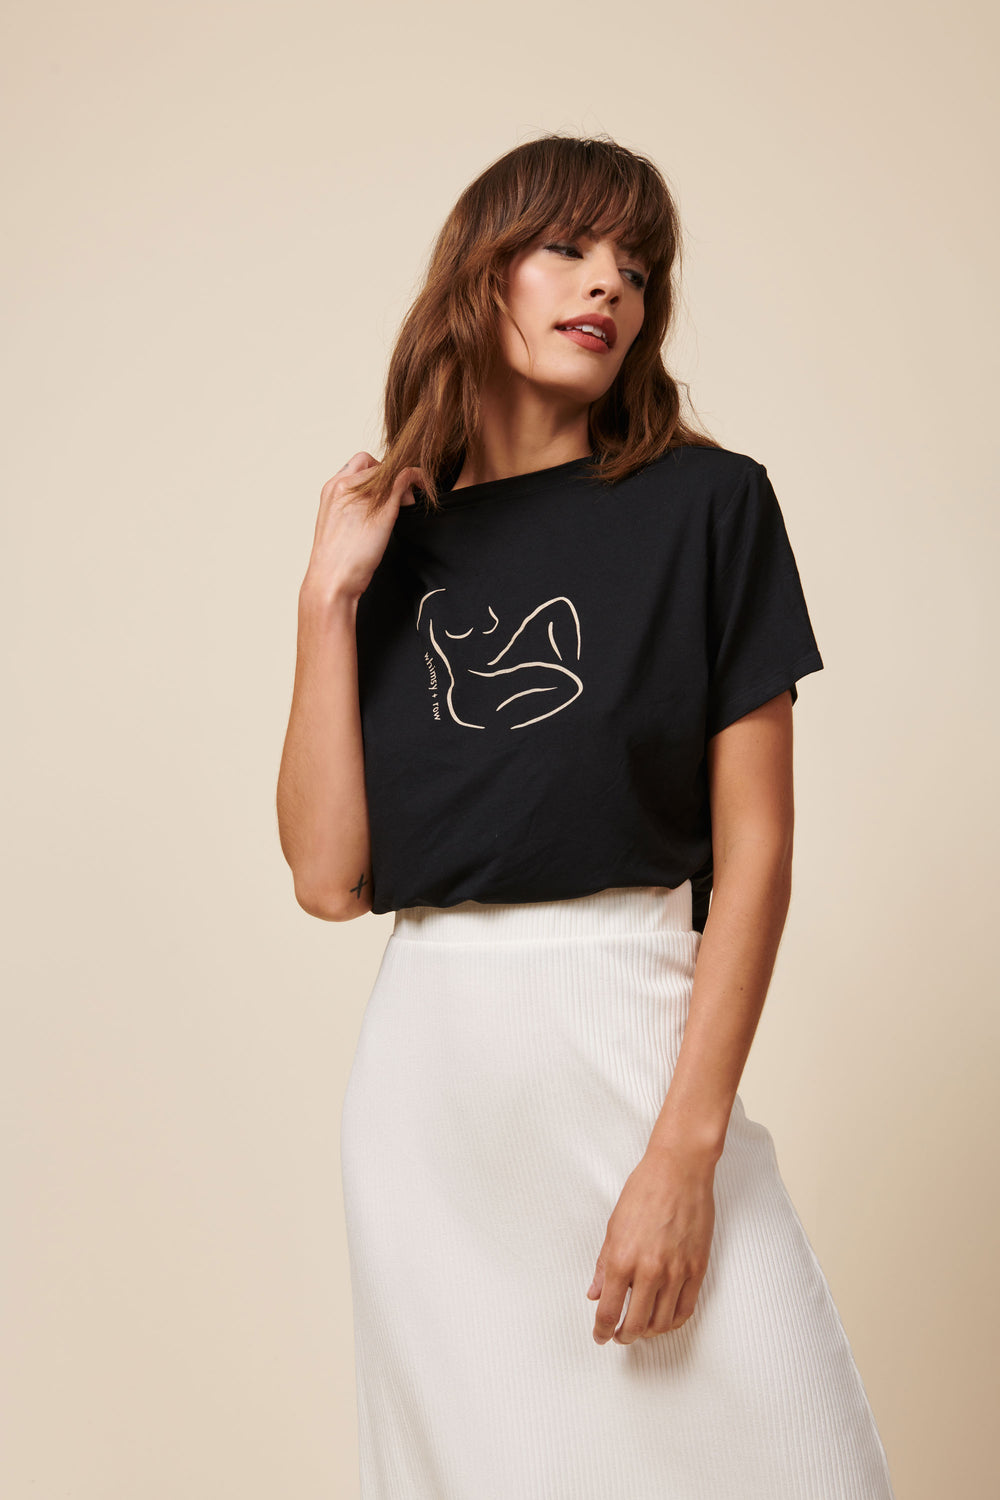 Lex Tee in Lady Print Black - Whimsy & Row